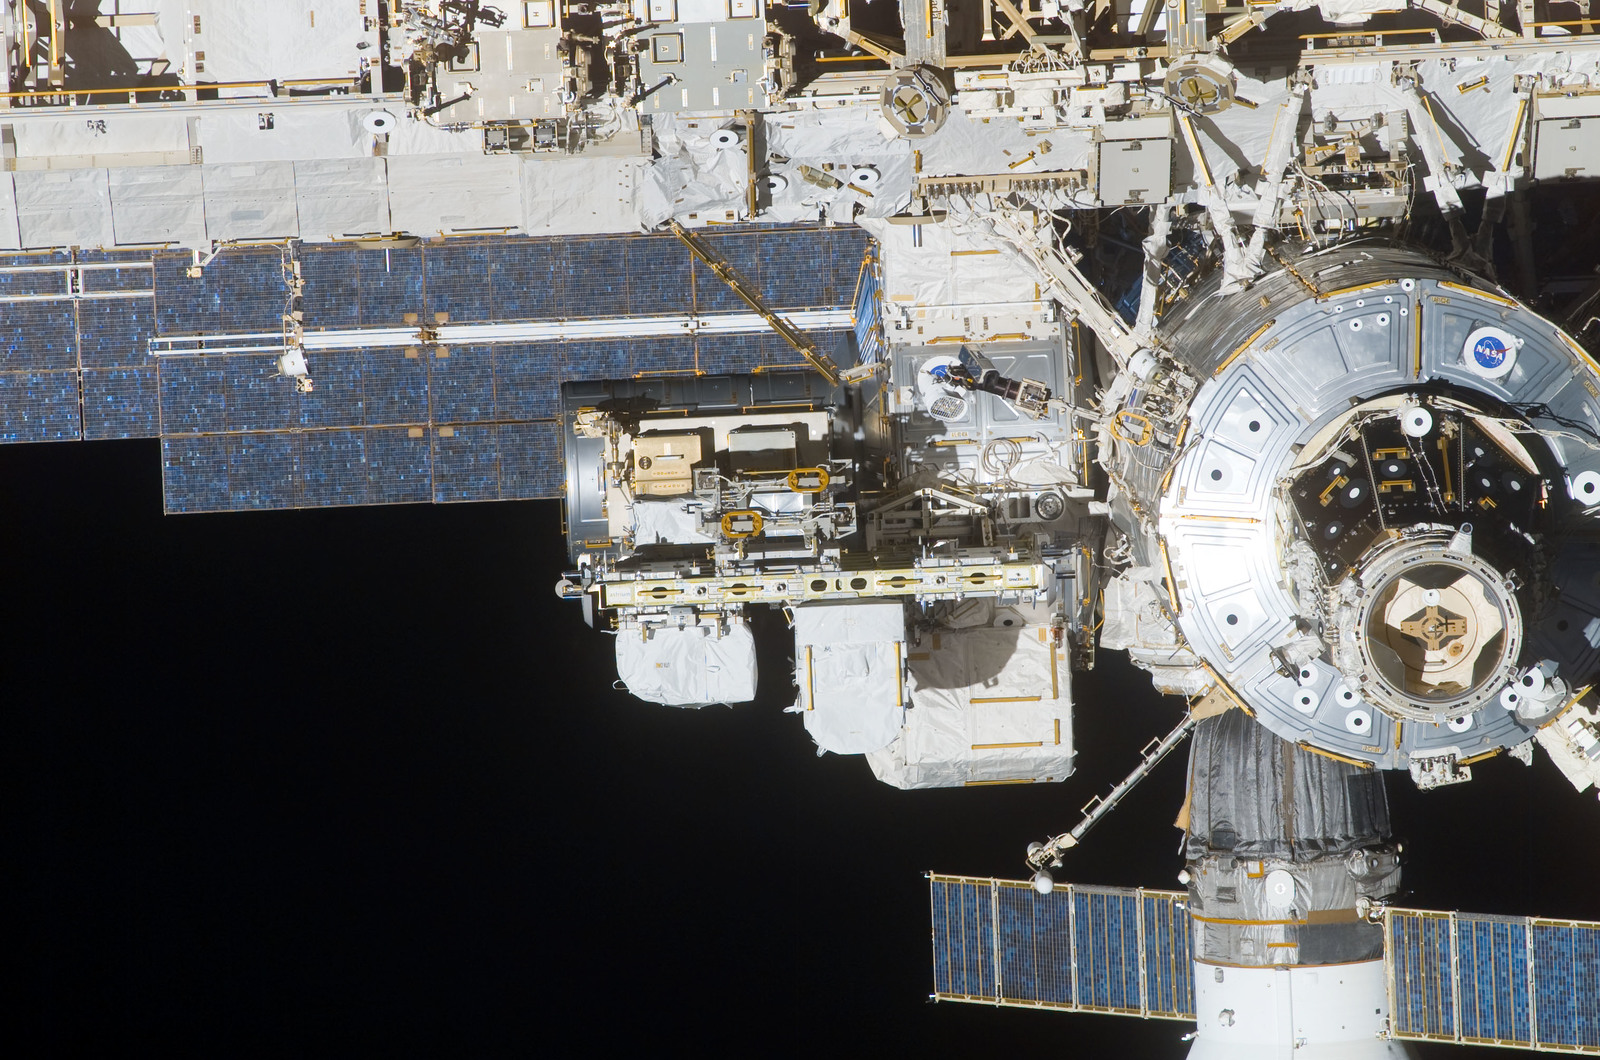 S114E7396 - STS-114 - FWD view of the ISS taken during Undocking and Flyaround Operations for STS-114 (LF1)